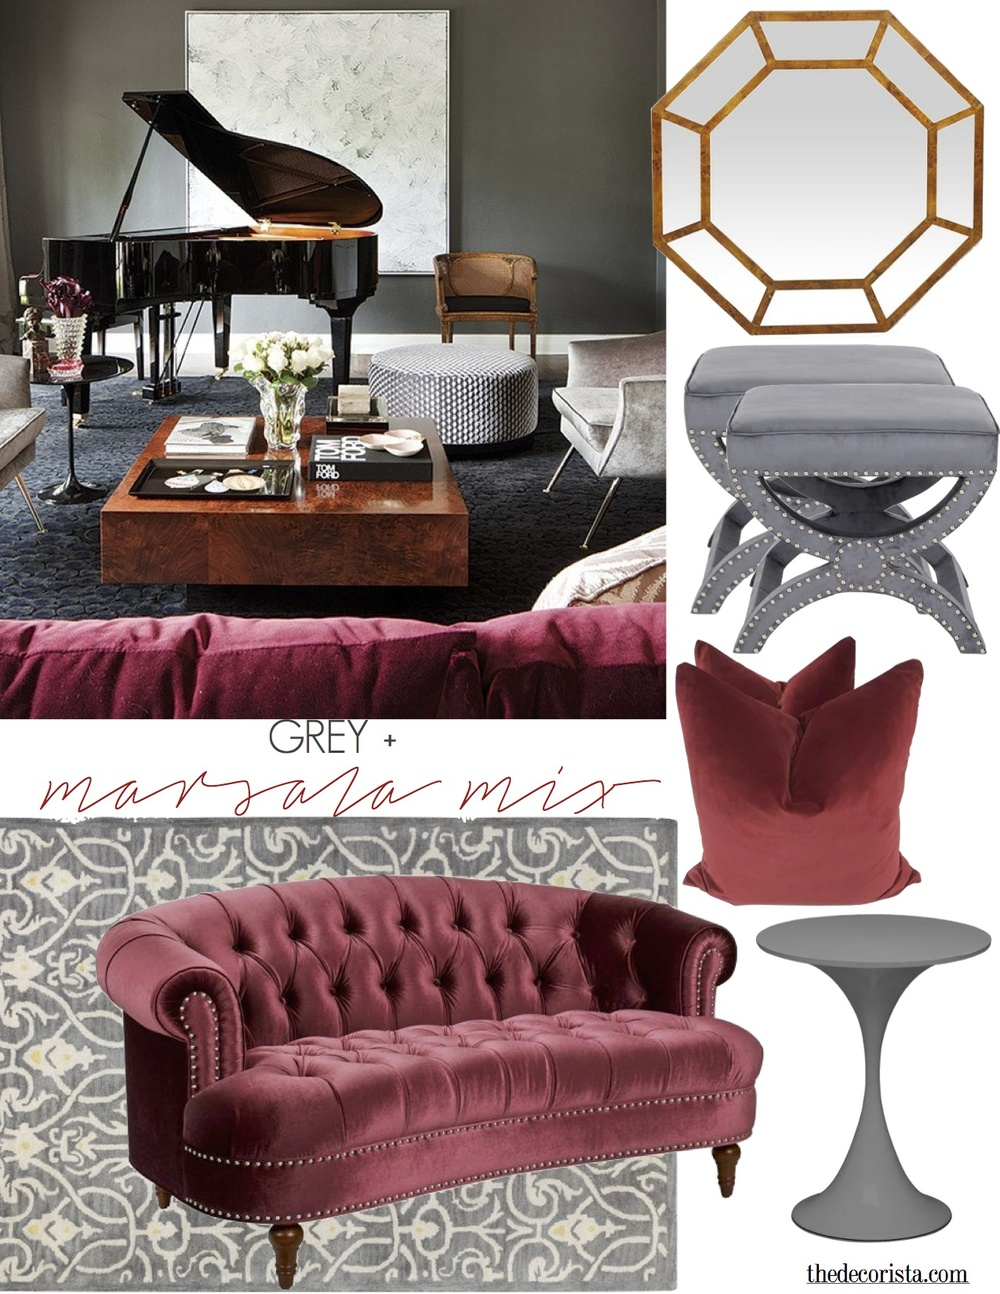 Grey + Marsala mix - inspired by David Hicks